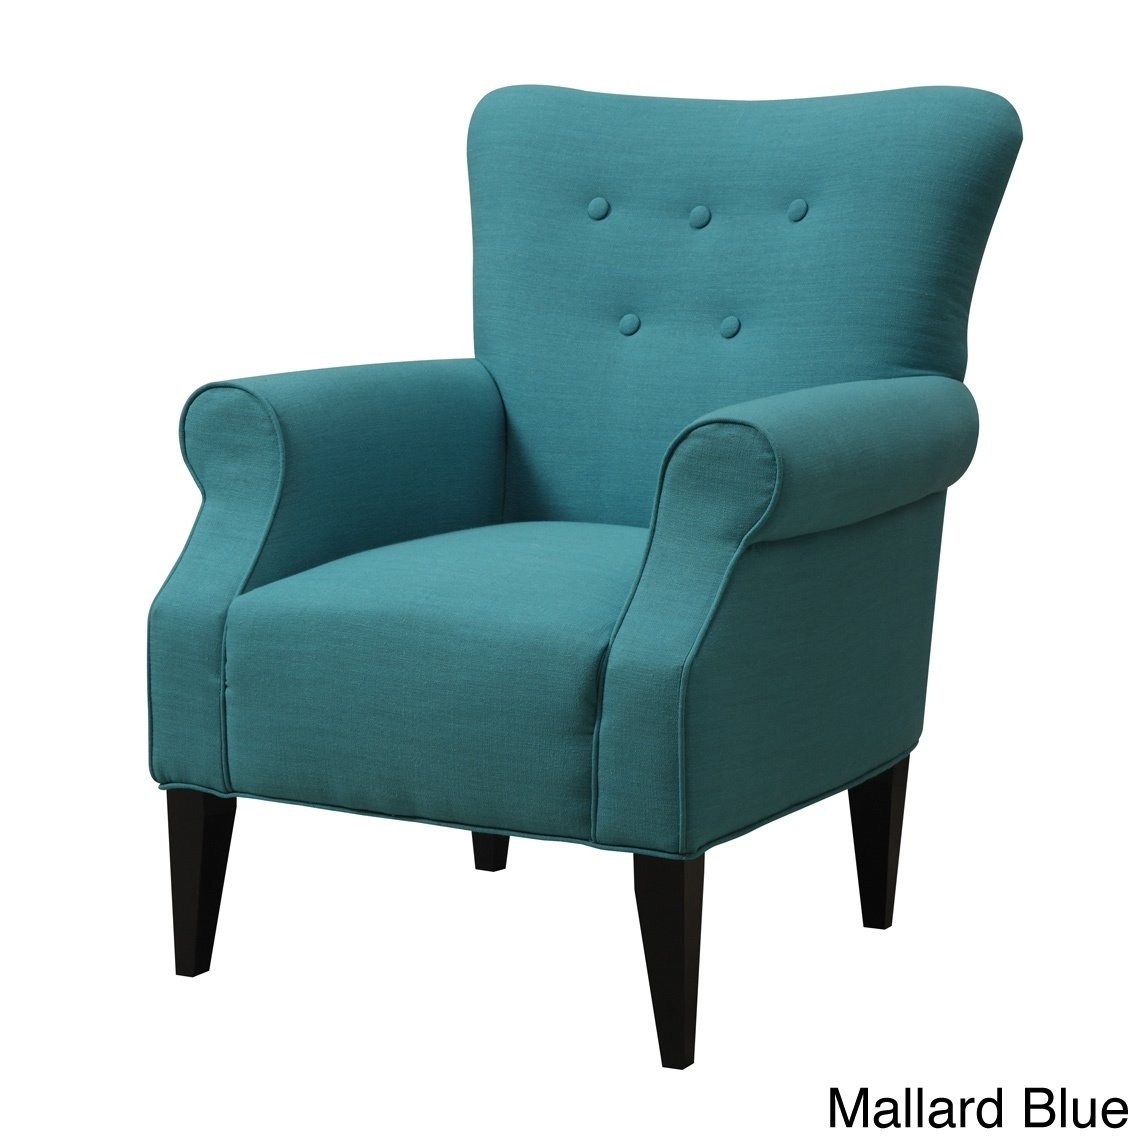 Widely Used Shop Emerald Lydia Accent Chair – Free Shipping Today – Overstock Inside Mallard Side Chairs With Cushion (View 13 of 20)